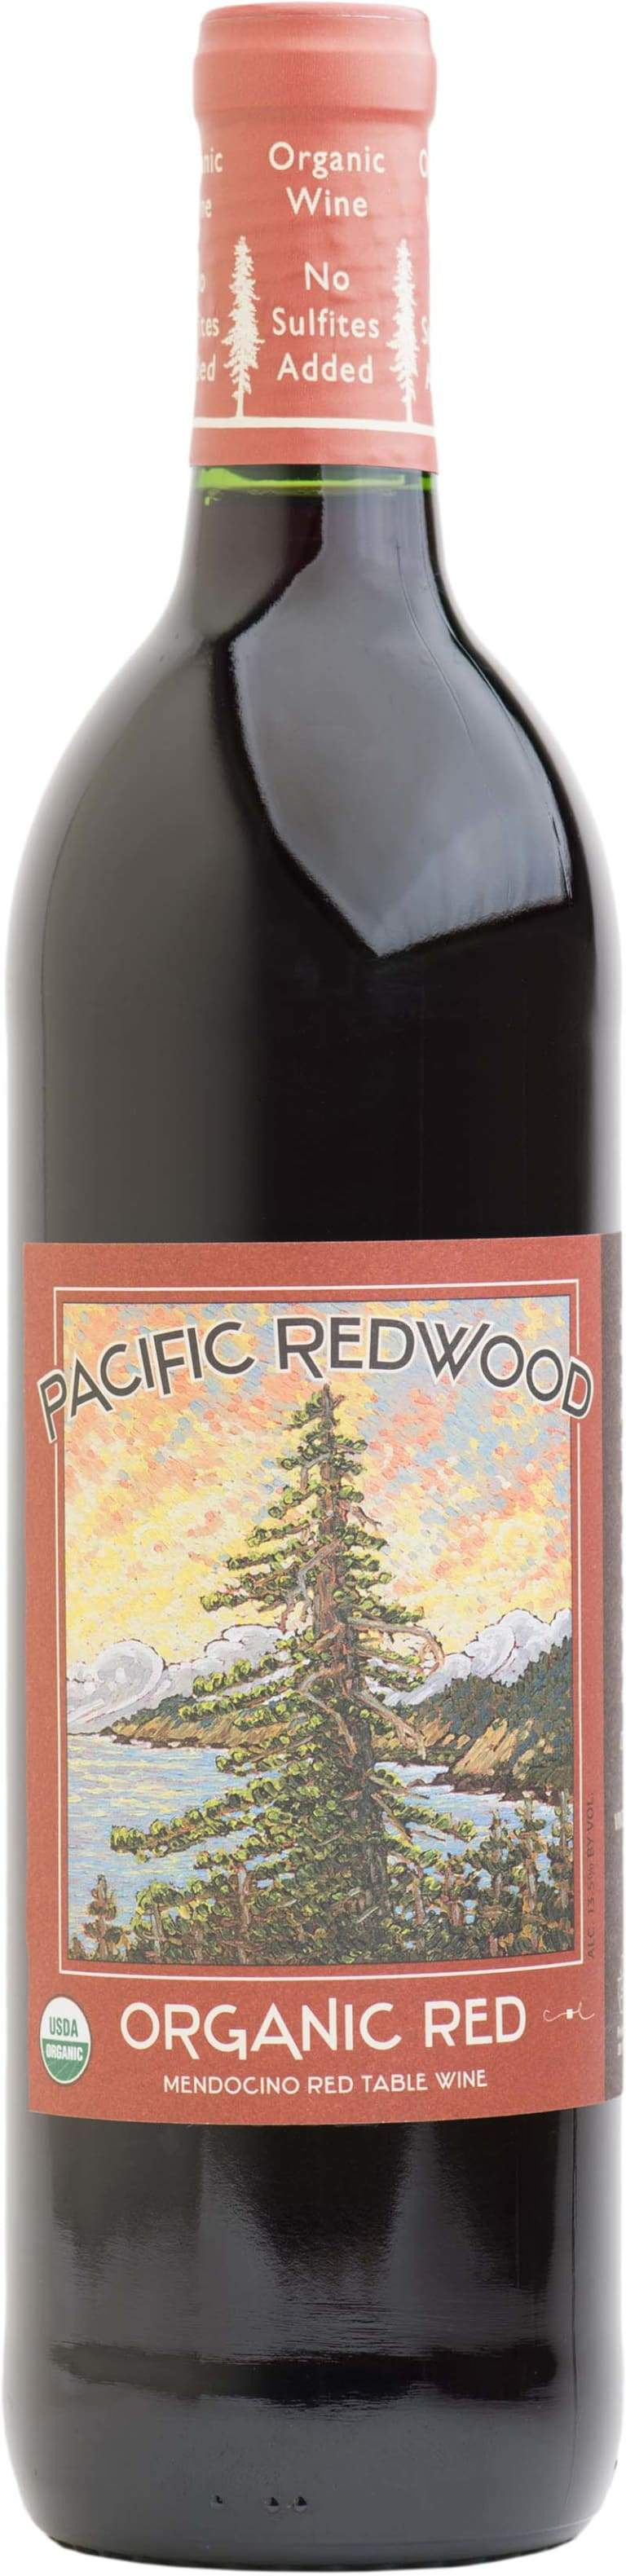 Pacific Redwood Organic Red 2018